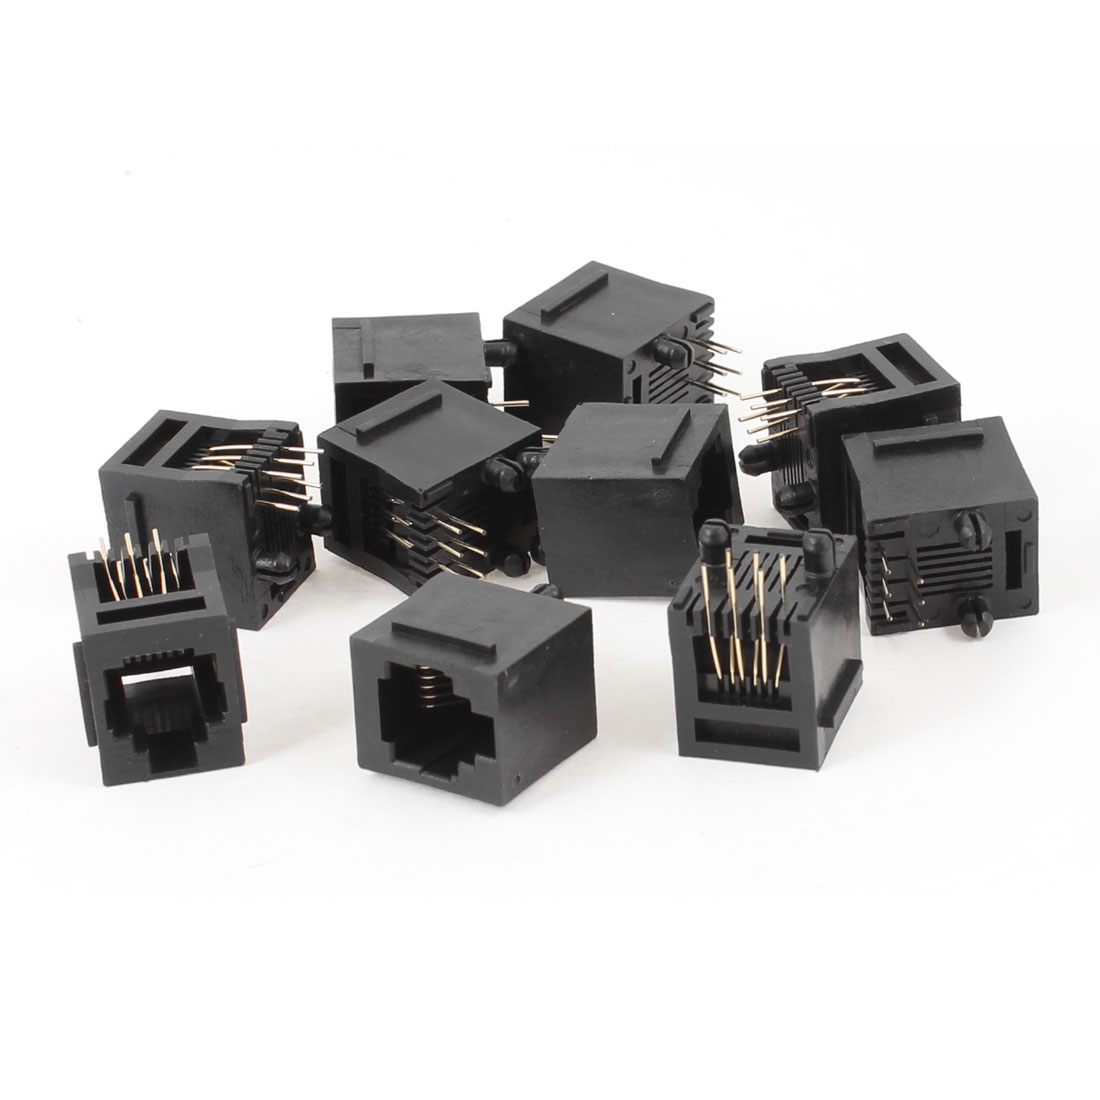 10 Pcs Black Plastic 180 Degree RJ12 6P6C Network Modular PCB Connector Jacks